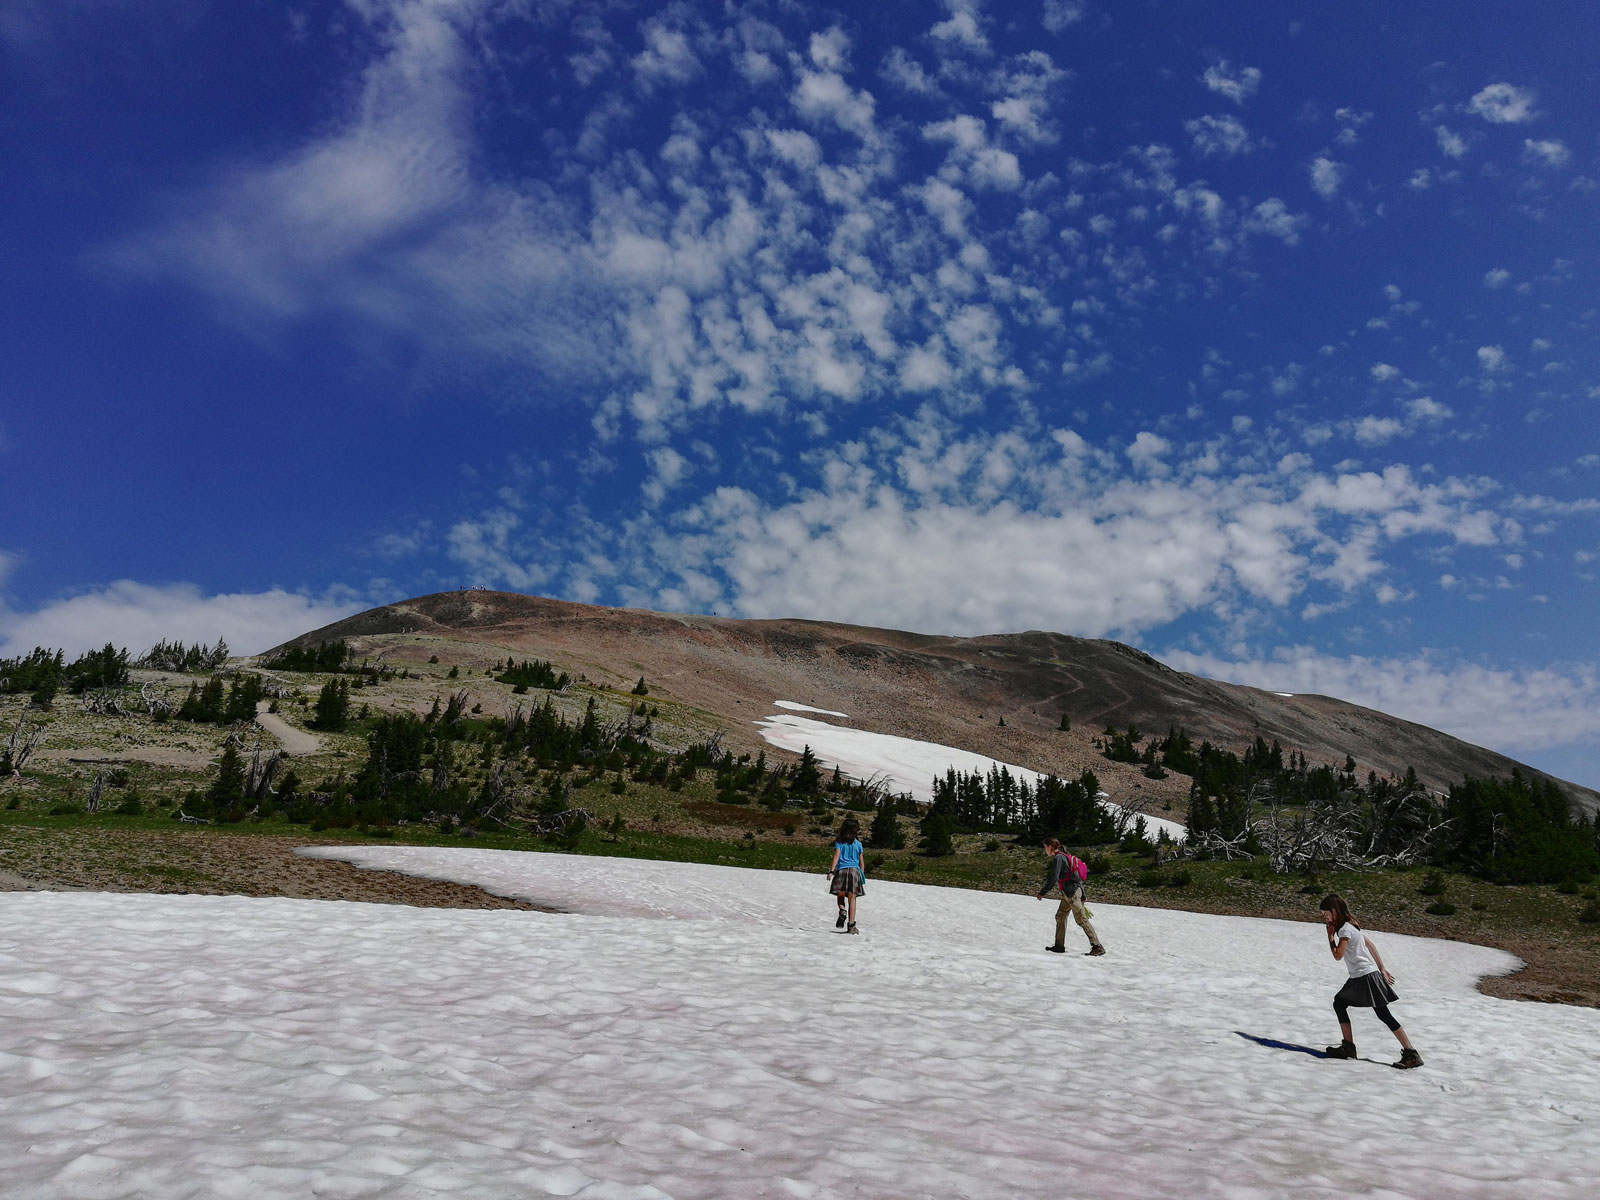 Snowpack on the trail to Avalanche Peak in Yellowstone National Park